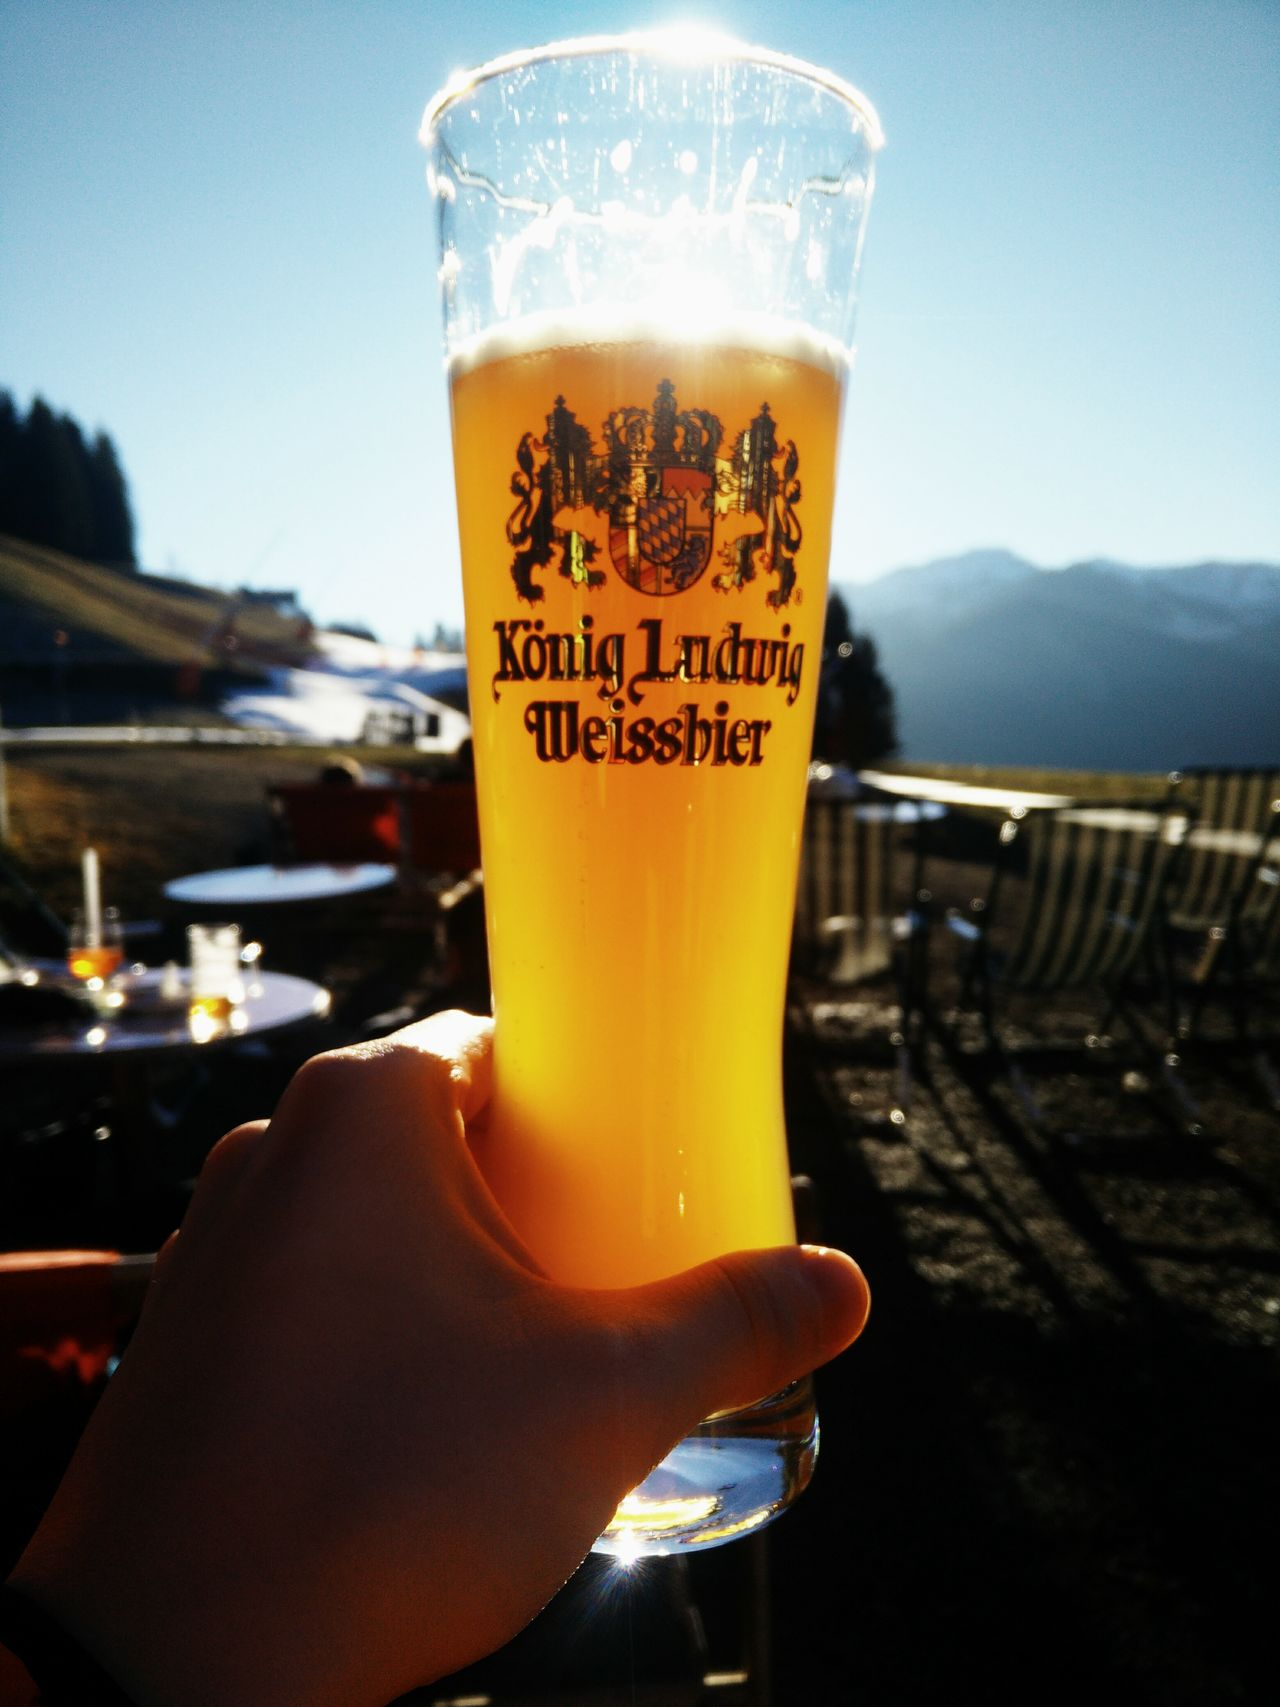 Beer - Alcohol Beer Glass Sky Sunlight Weissbier Drinking Glass